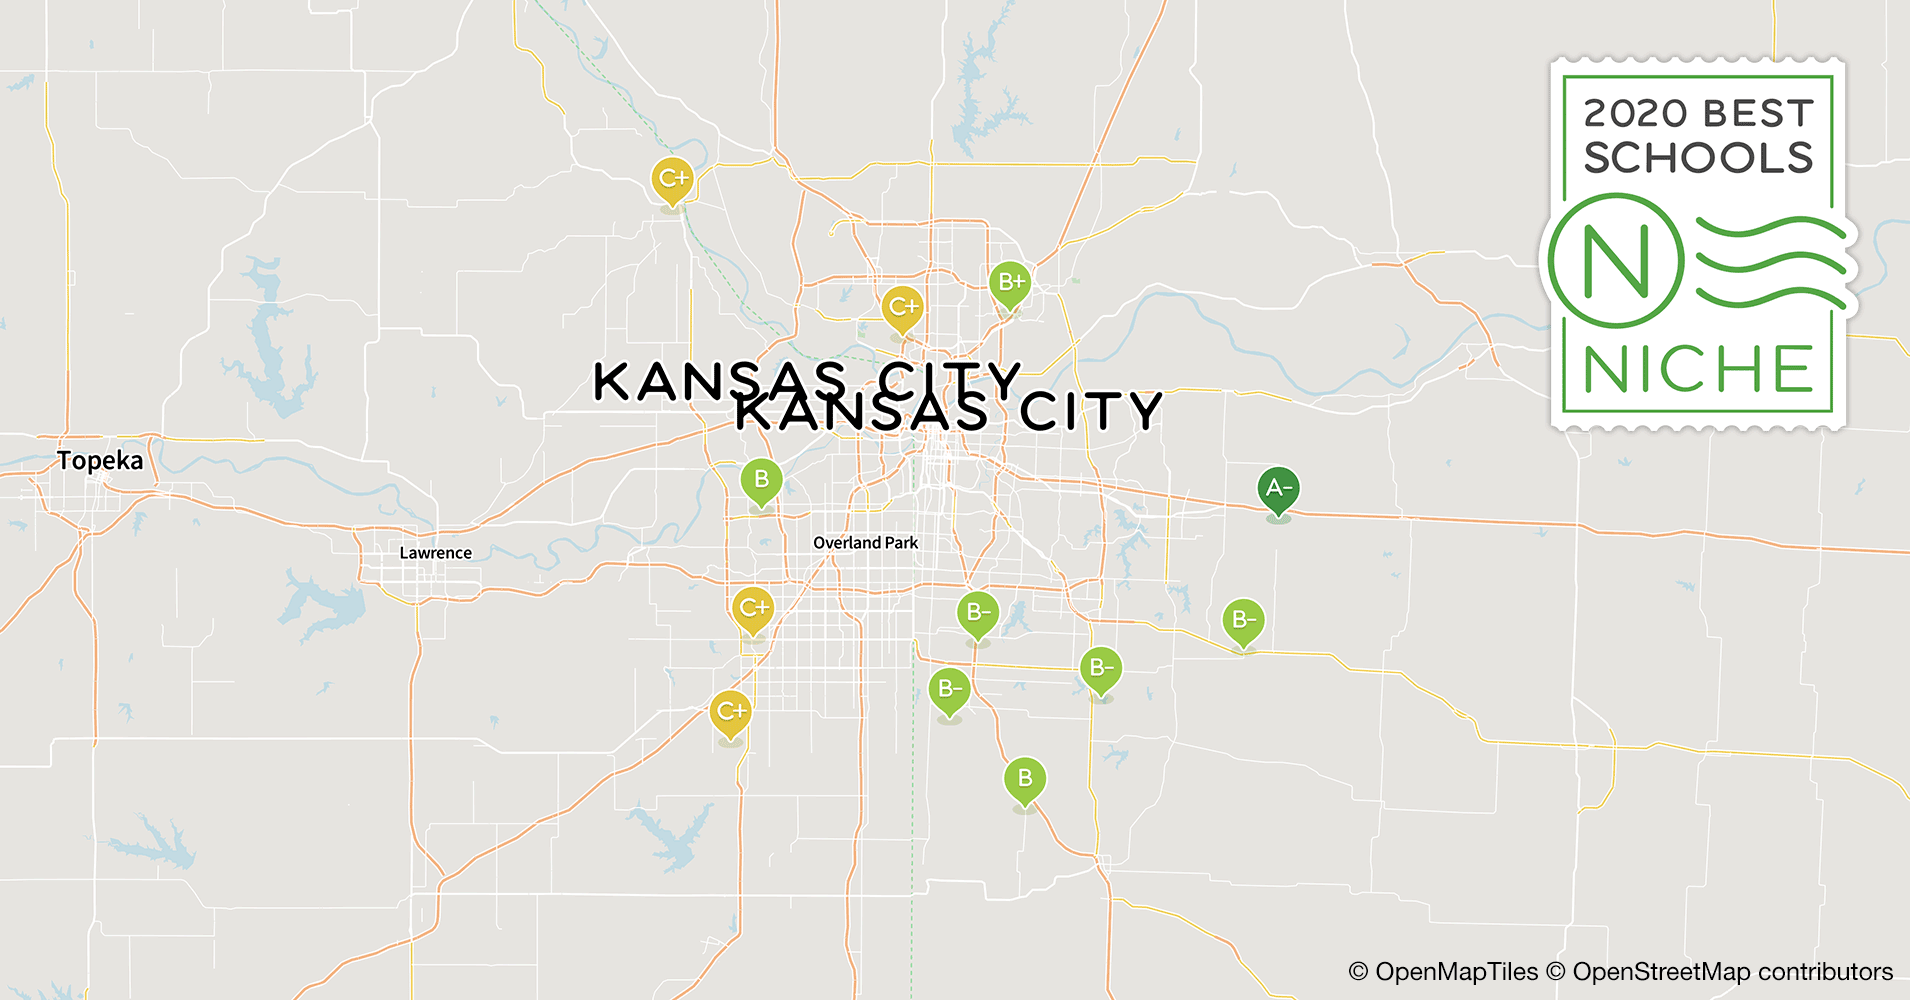 2020 Best Districts in the Kansas City Area - Niche Kansas Usa Hour Map on i-70 toll kansas, brewster kansas, interstate 70 kansas, detailed map kansas, haven kansas, joy land amusement park kansas, atchison county kansas, lake wabaunsee kansas, special olympics kansas, grainfield kansas, road map kansas, brown county kansas, wabaunsee county kansas, haskell county kansas, best of kansas, world map kansas, map of kansas, fracking map kansas, names of towns in kansas,